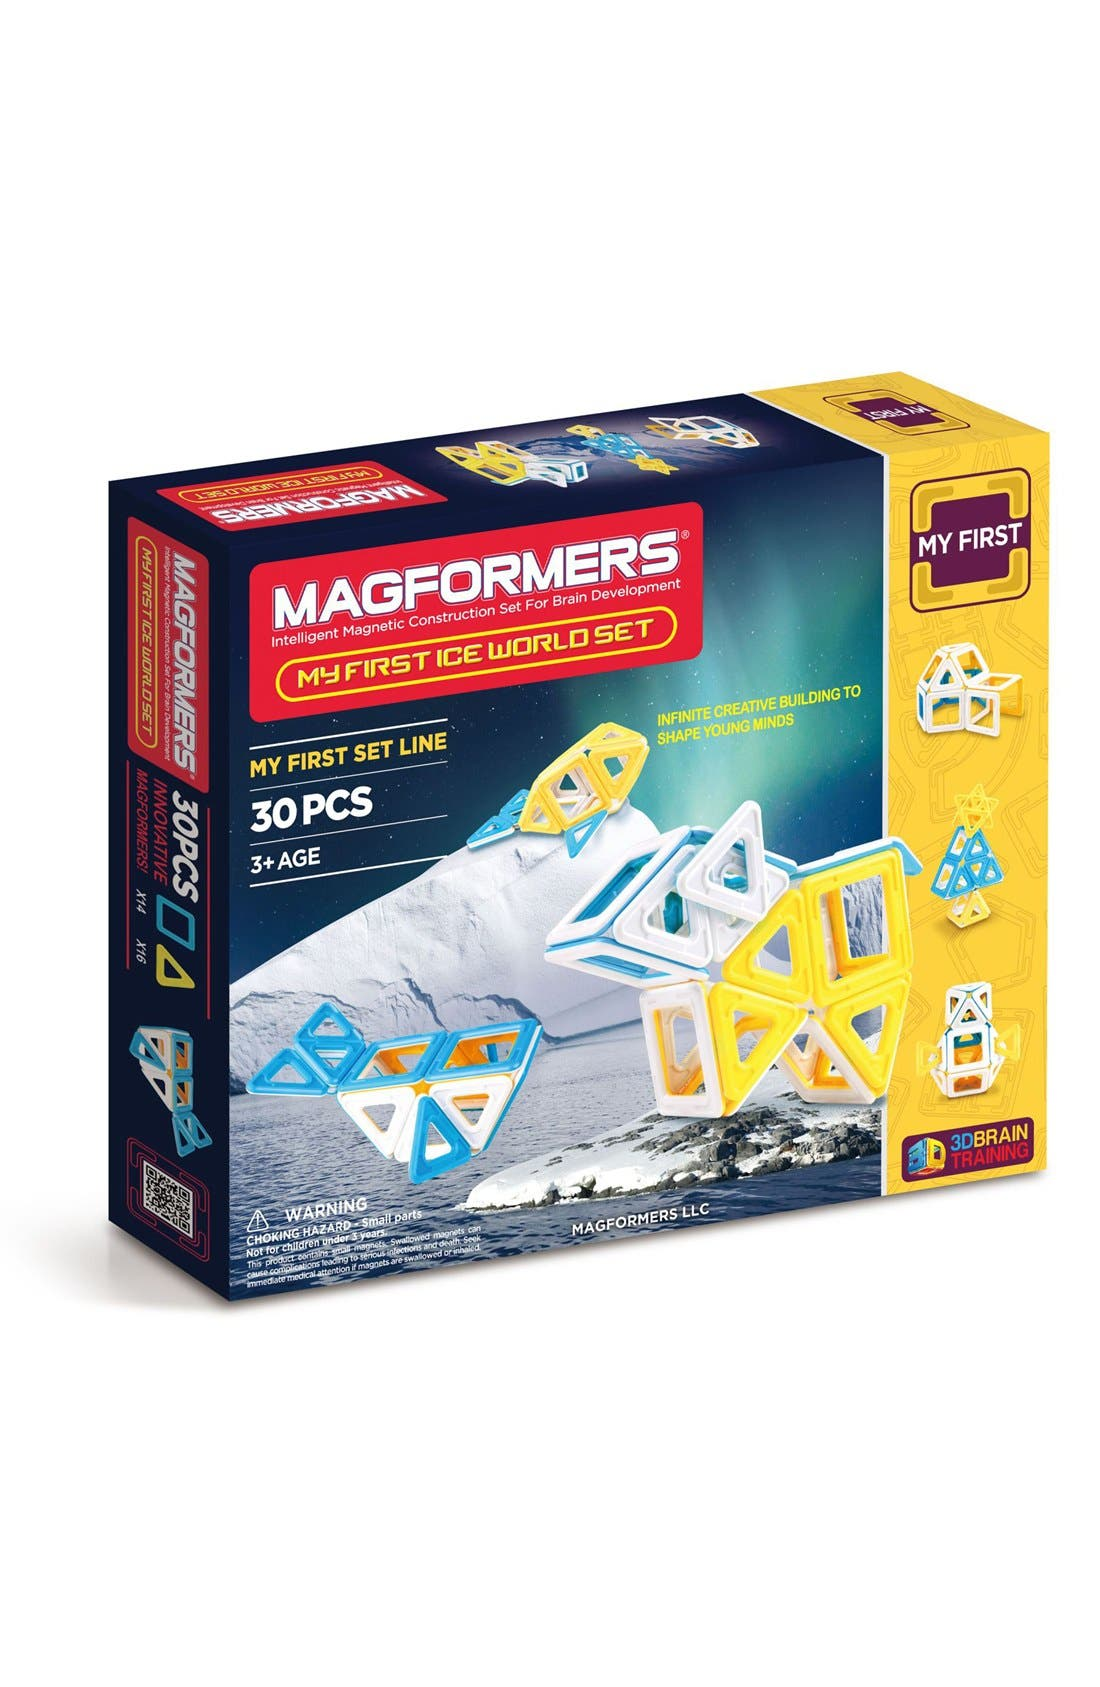 Magformers 'My First Ice World' Magnetic 3D Construction Set